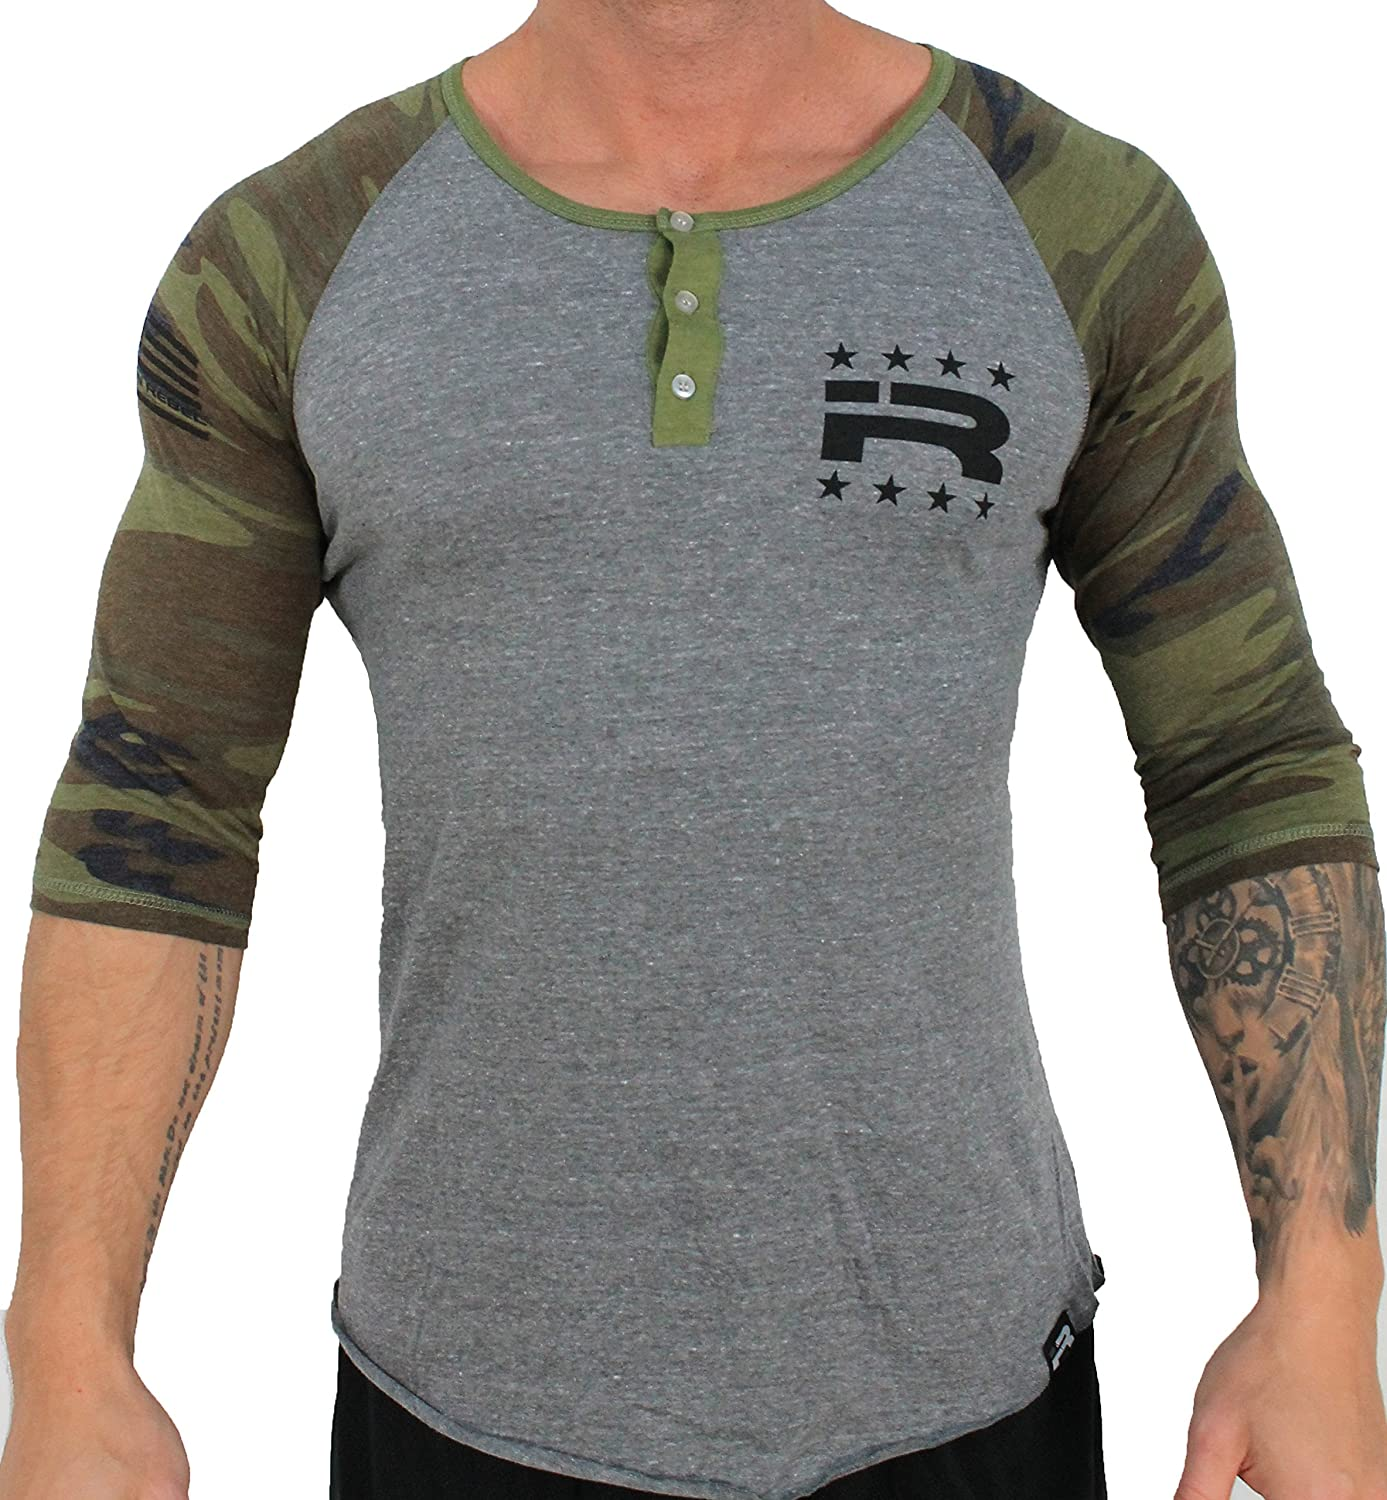 Iron Rebel - War Games Raglan (Camo)